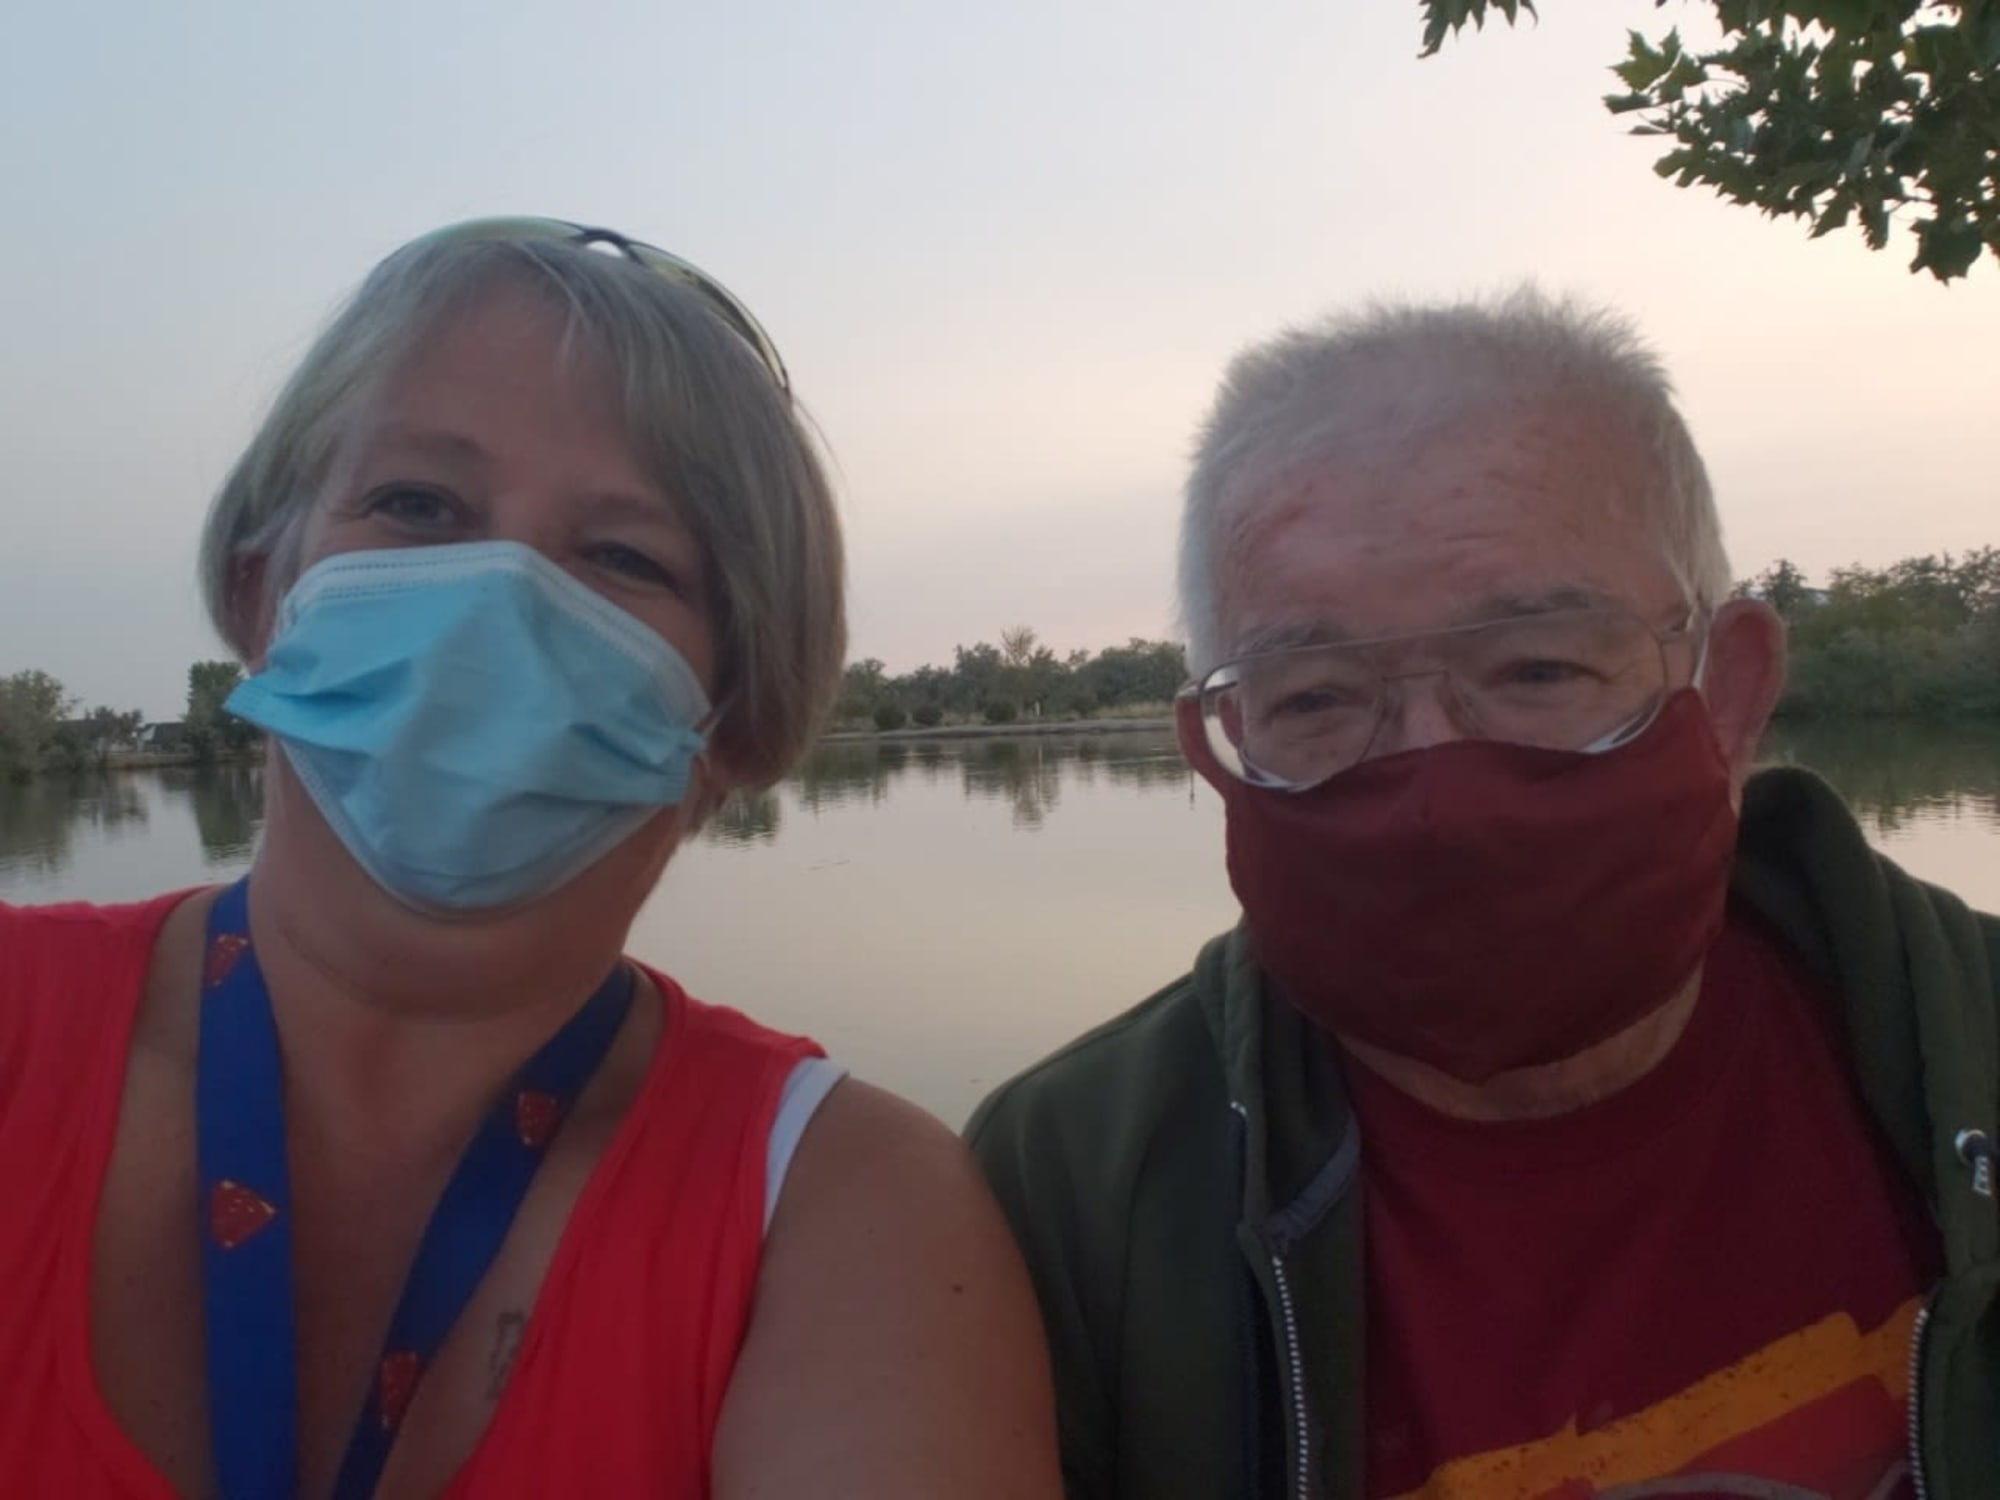 A couple in masks at Chancellor Gardens in Clearfield, UT